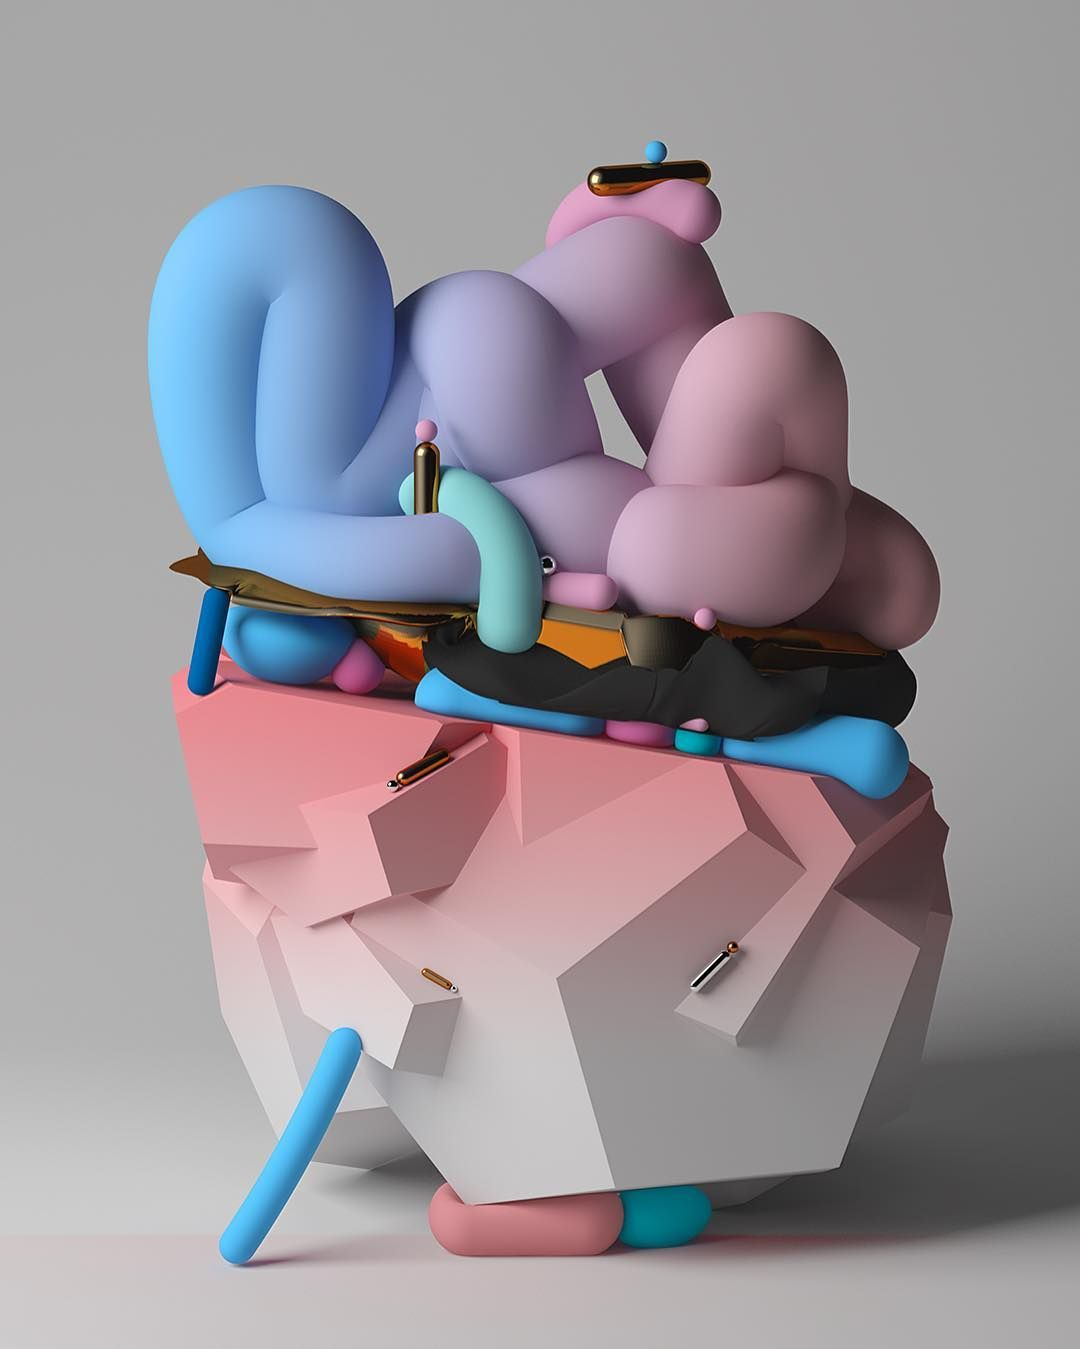 <p>Madrid and Paris based artist Boldtron renders 3D sculptures in his series Fantasaraxia. Created with Cinema4D, the abstract shapes are composed of colorful gradients juxtaposition with metallic hu